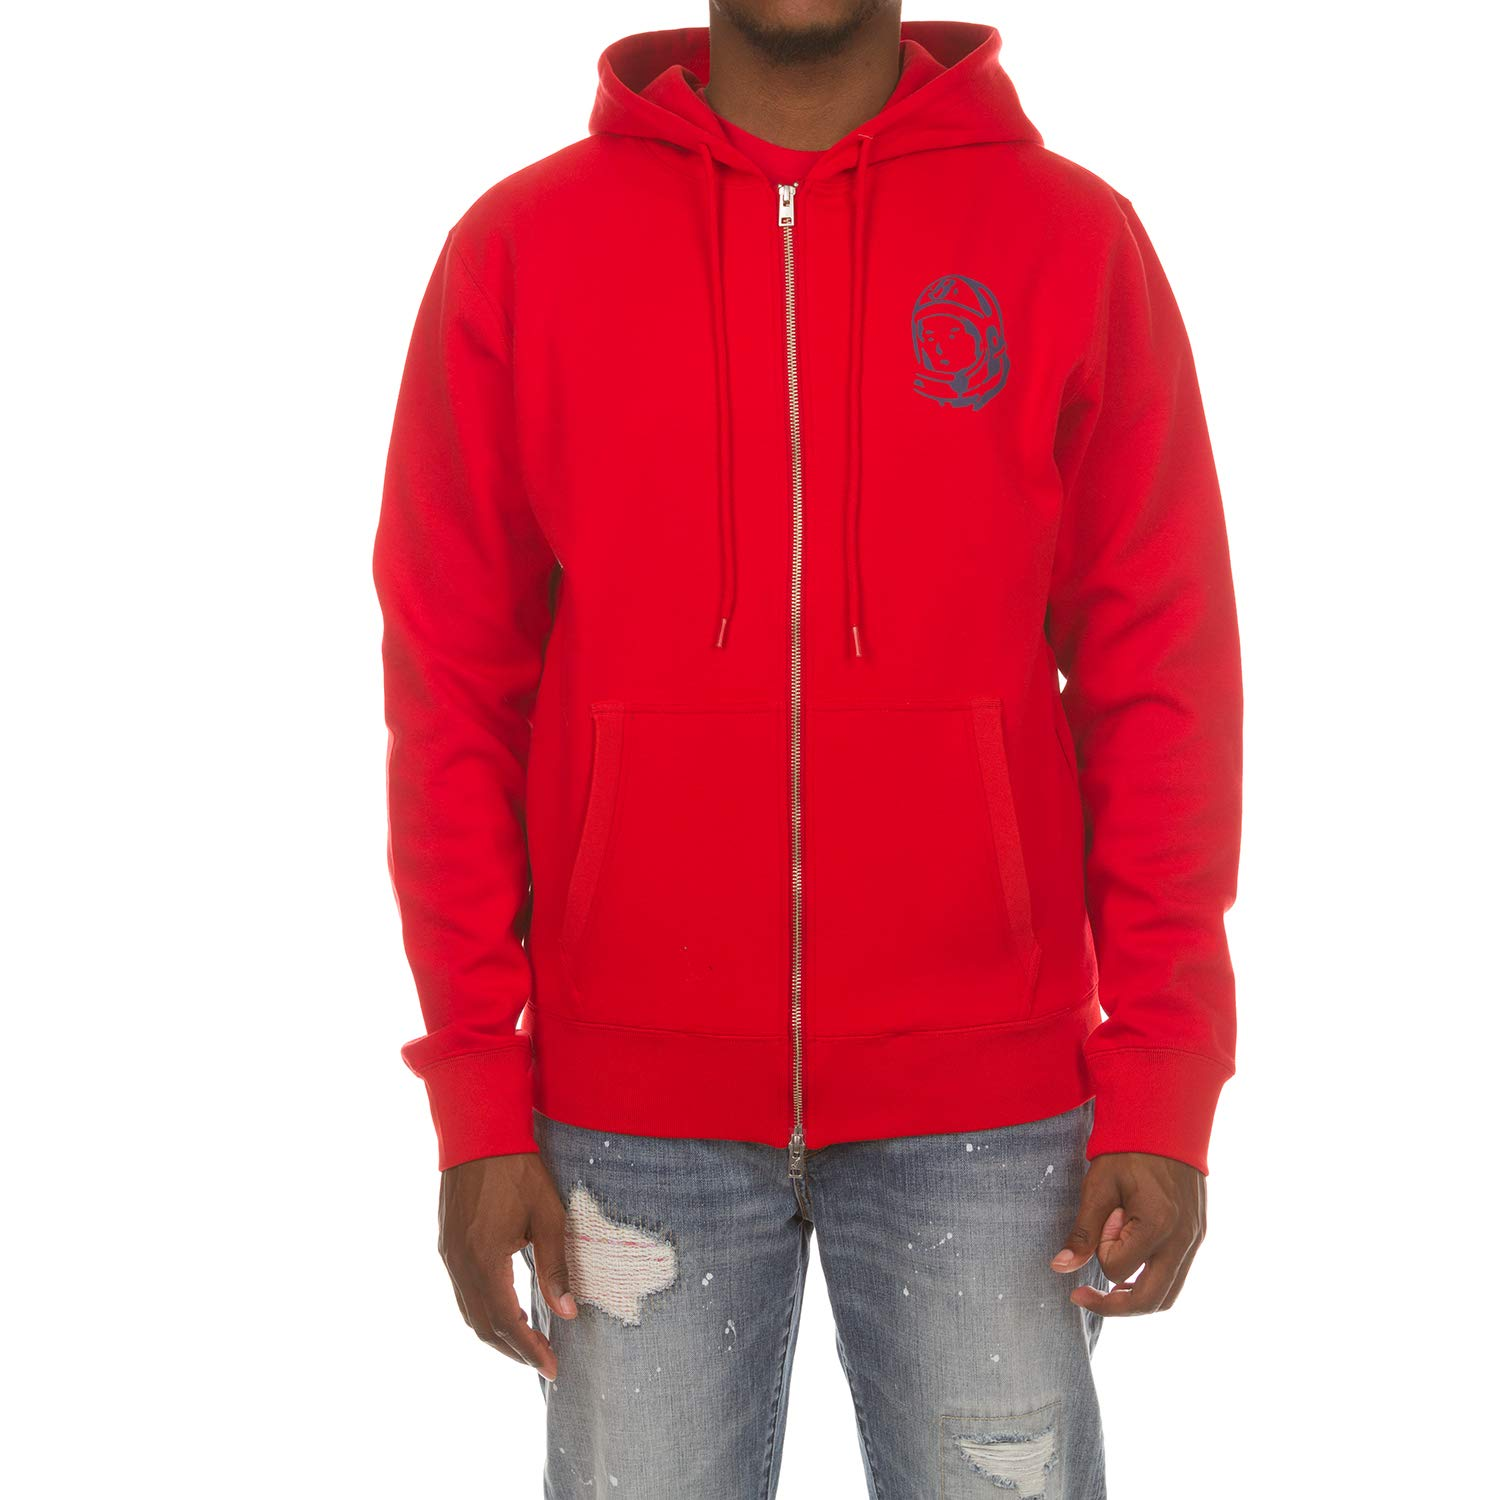 320d32d8123 Amazon.com  Billionaire Boys Club BB Zip Logo Hoodie in Black and Red 881-8304   Clothing